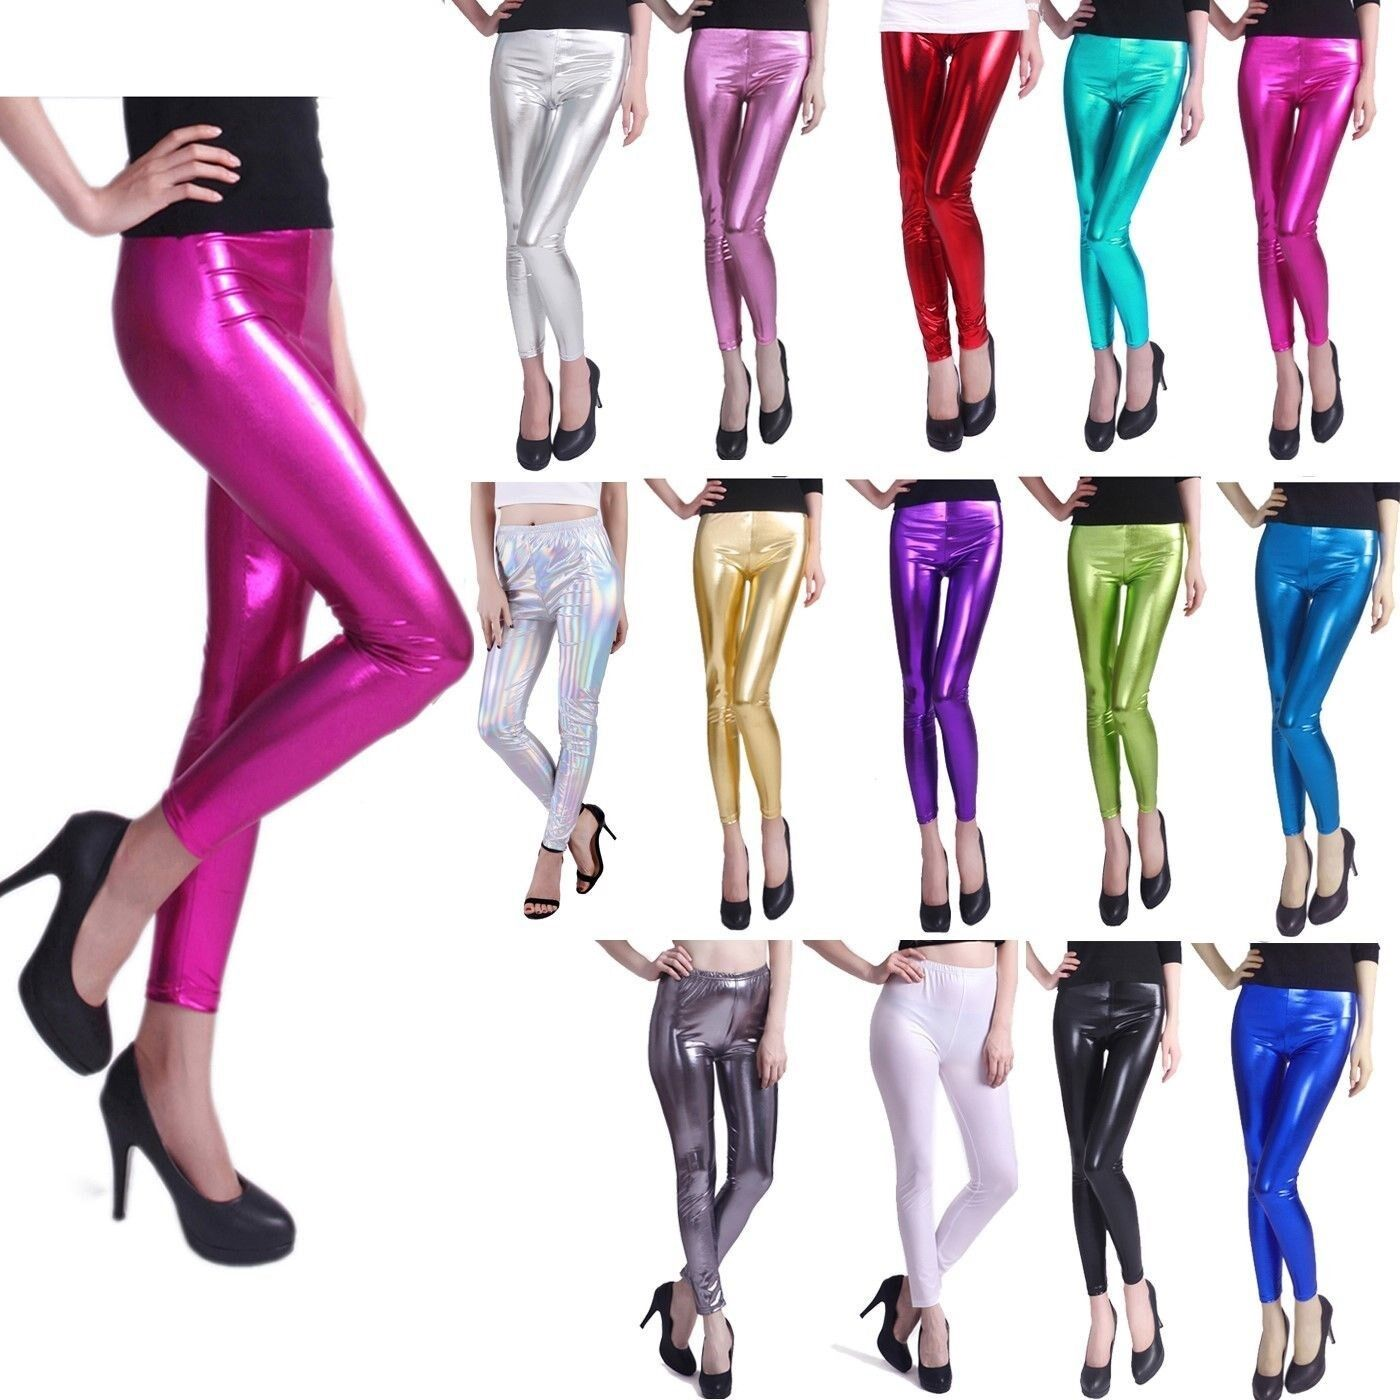 Leggings - Women's Sexy Shiny Metallic Leggings Liquid Wet Look Stretch Tight Fit Pants